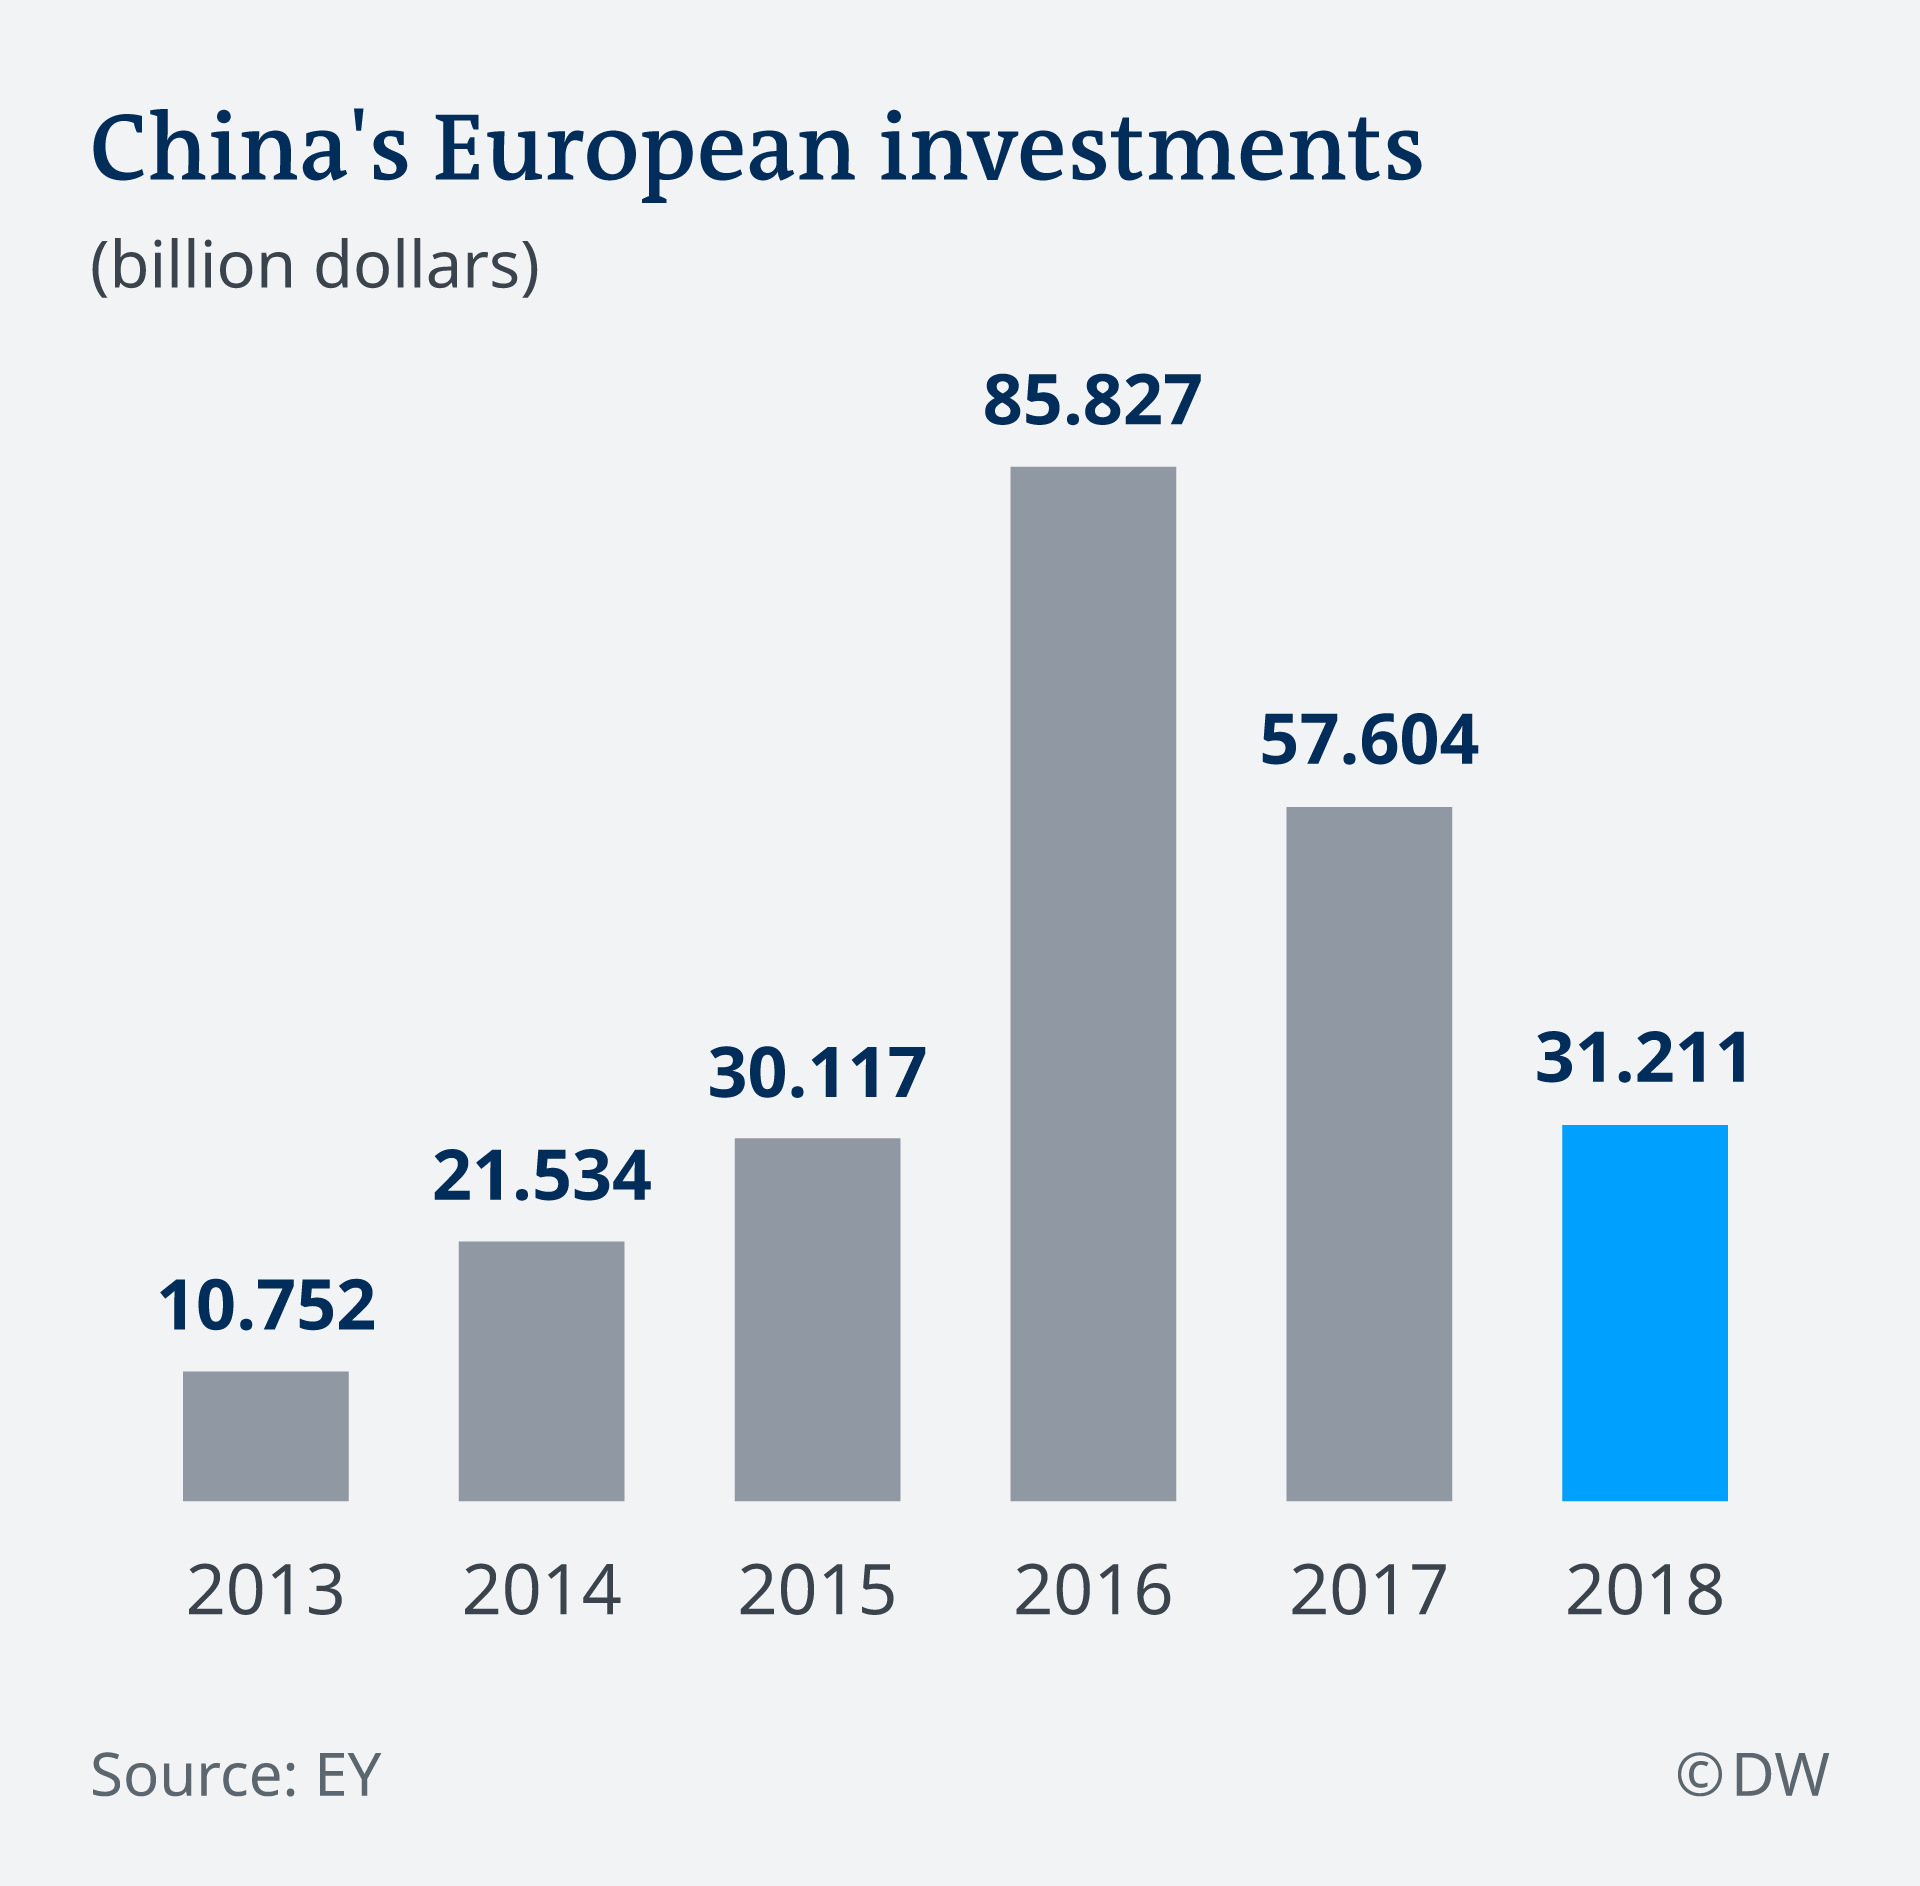 China's European investments in billion dollars